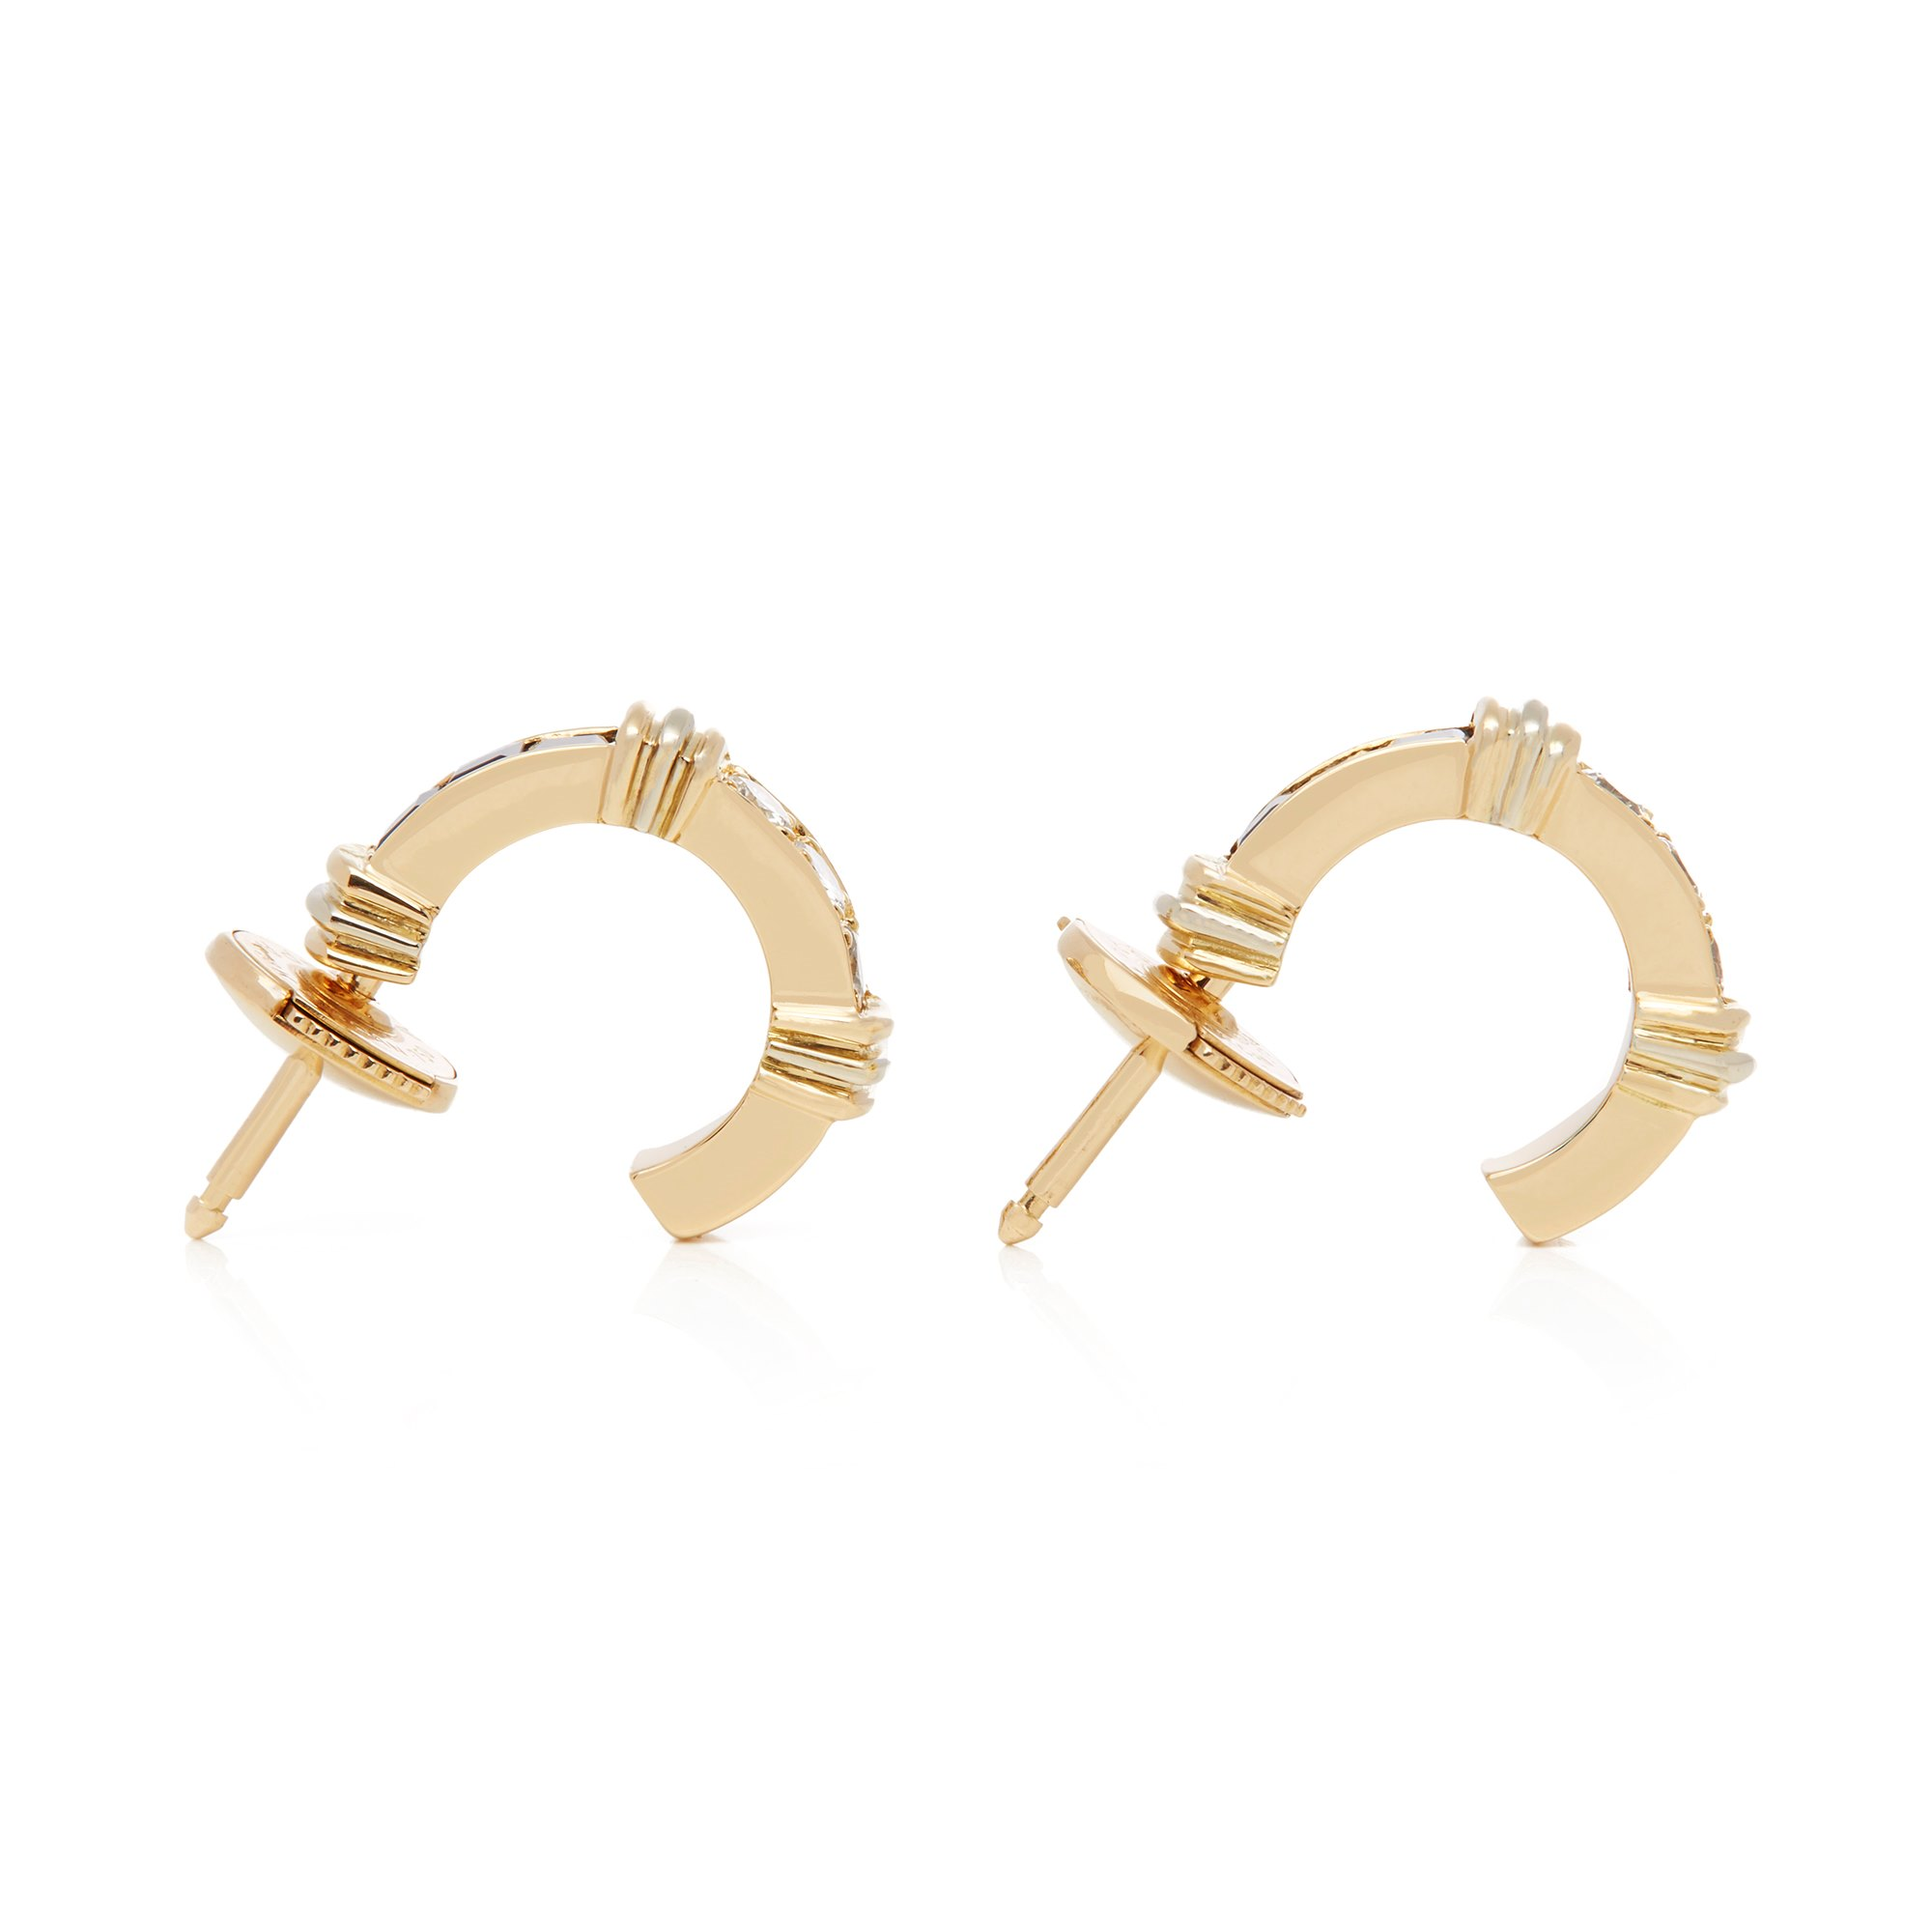 Cartier 18ct Yellow Gold Sapphire and Diamond Half Hoop Earrings